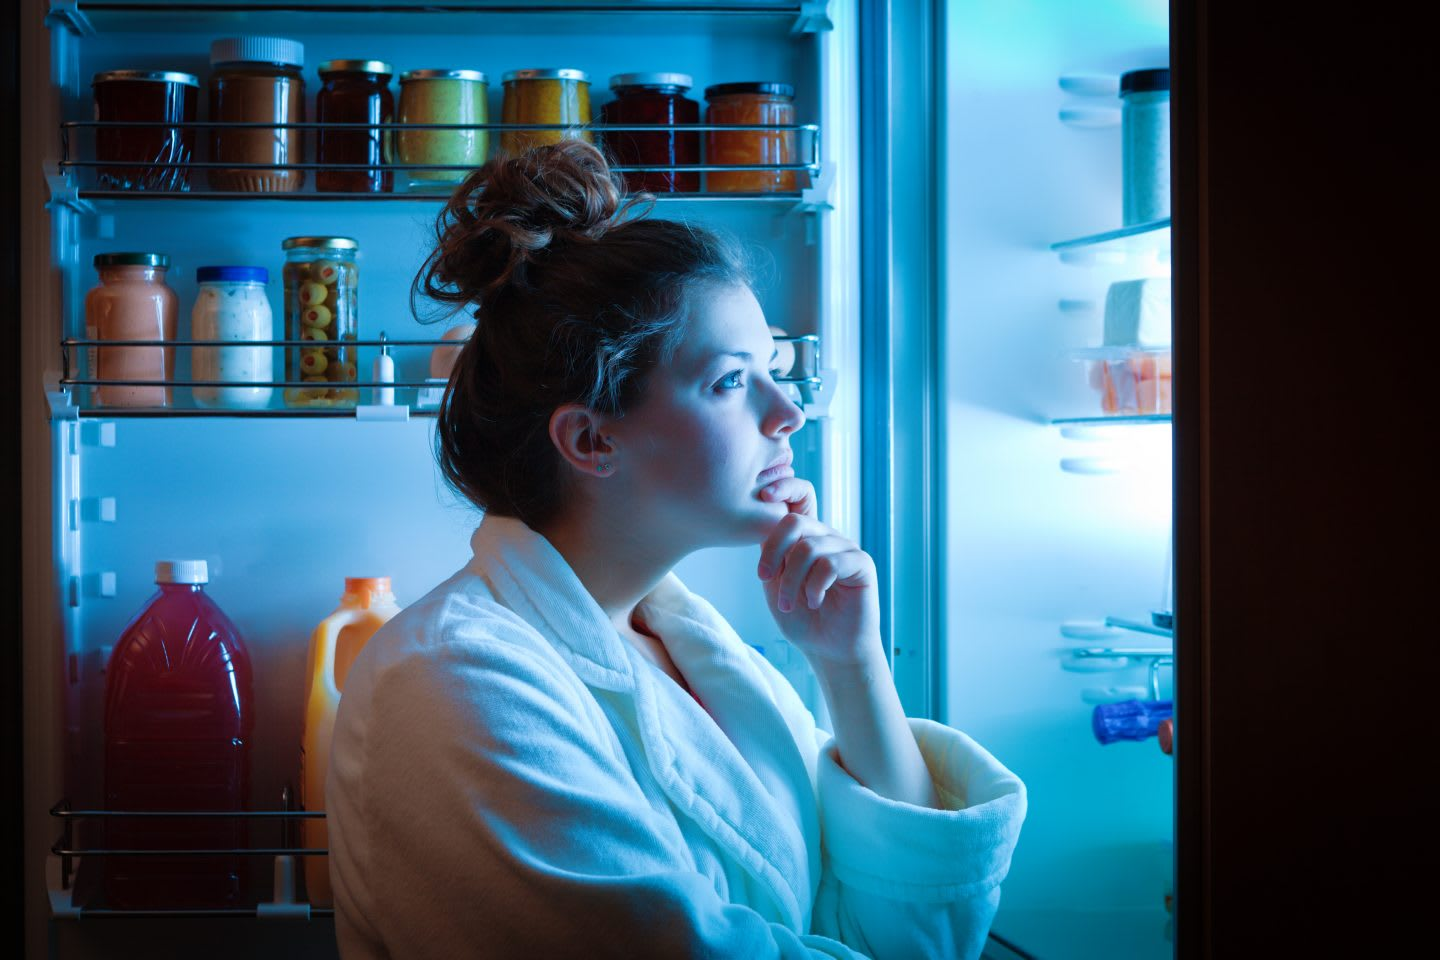 A young dieting woman standing in front of the refrigerator, contemplating and thinking about what to eat for hunger. Making choices and decision for healthy lifestyle, adidas, GamePlan A, nutrition, health